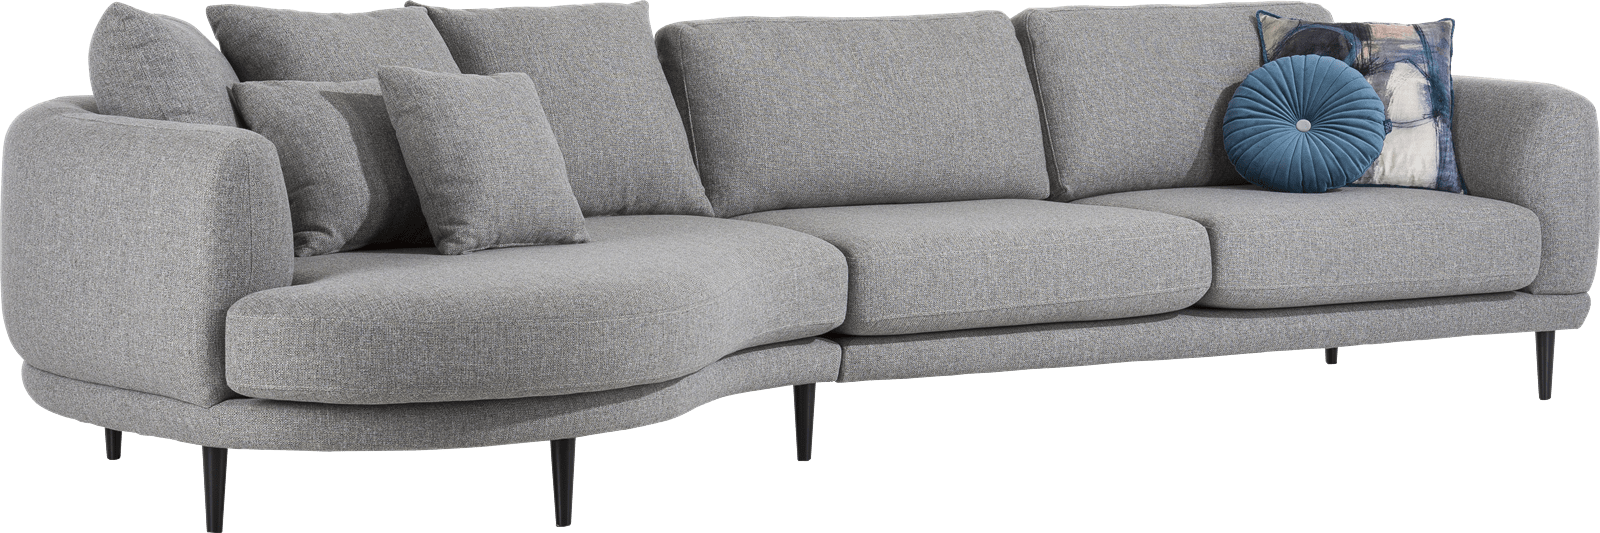 Henders and Hazel - Portland - Modern - Banken - lounge end inclusief 3 rugkussens big - rond - links